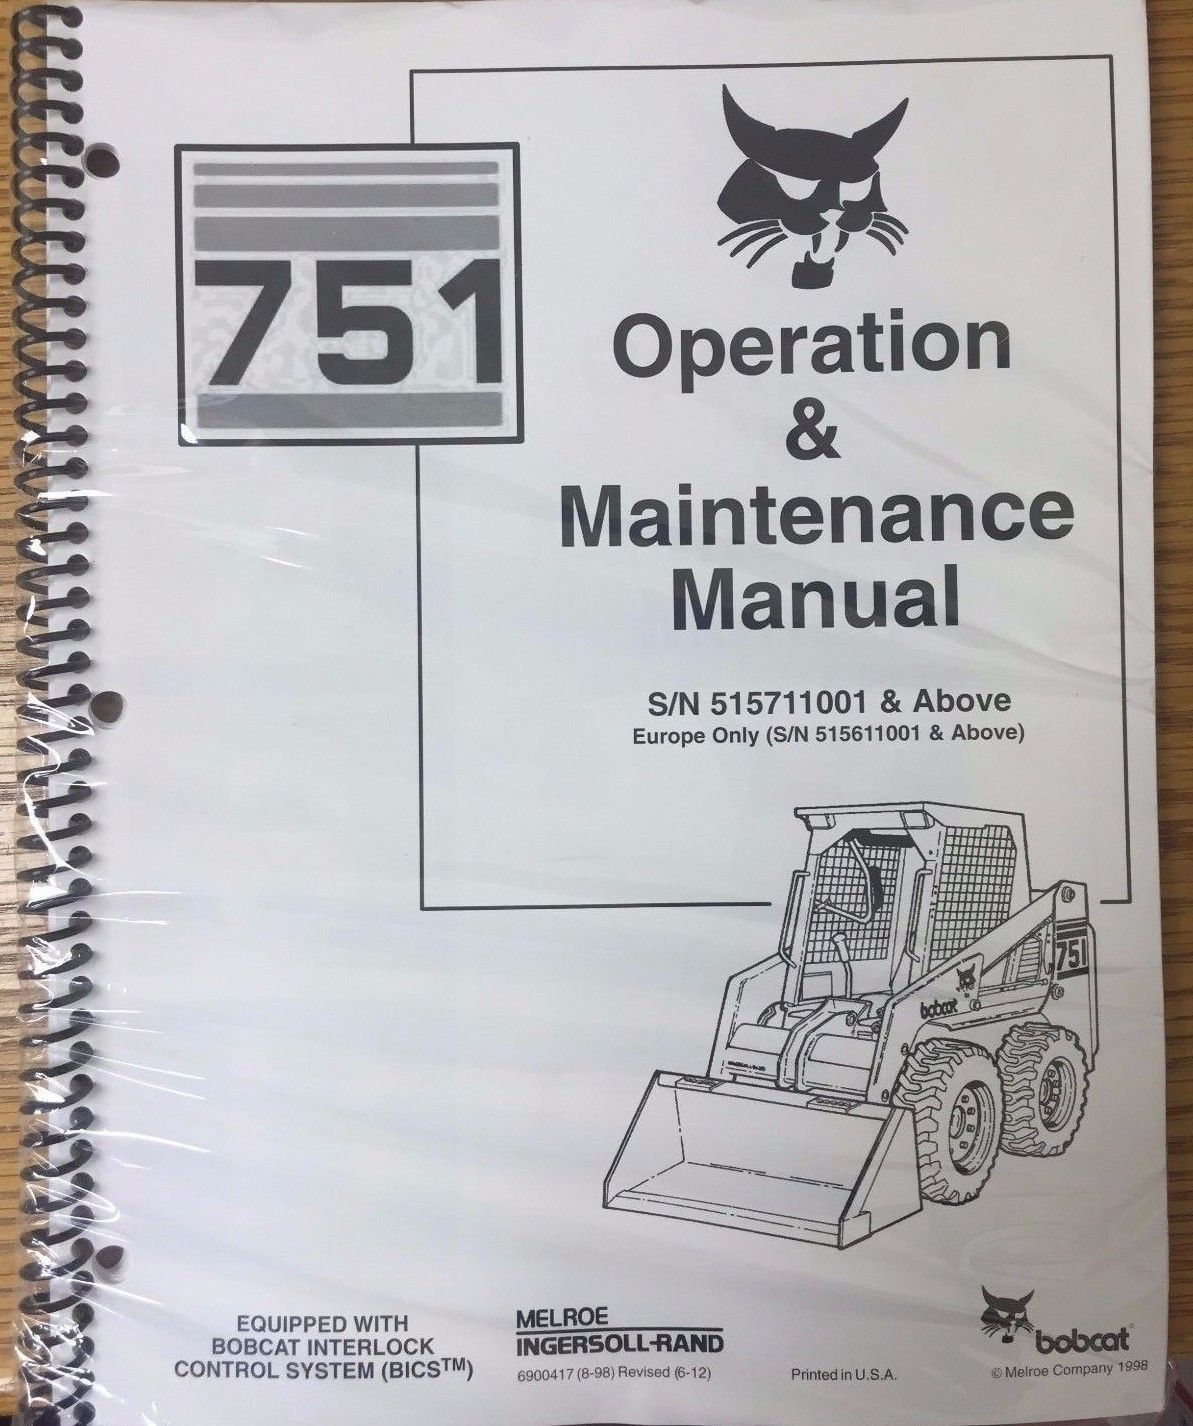 hight resolution of bobcat 751 auto files ingersoll rand bobcat 751 service manual pdf view links after clicking link 742 step by step instruction john deere 3032e